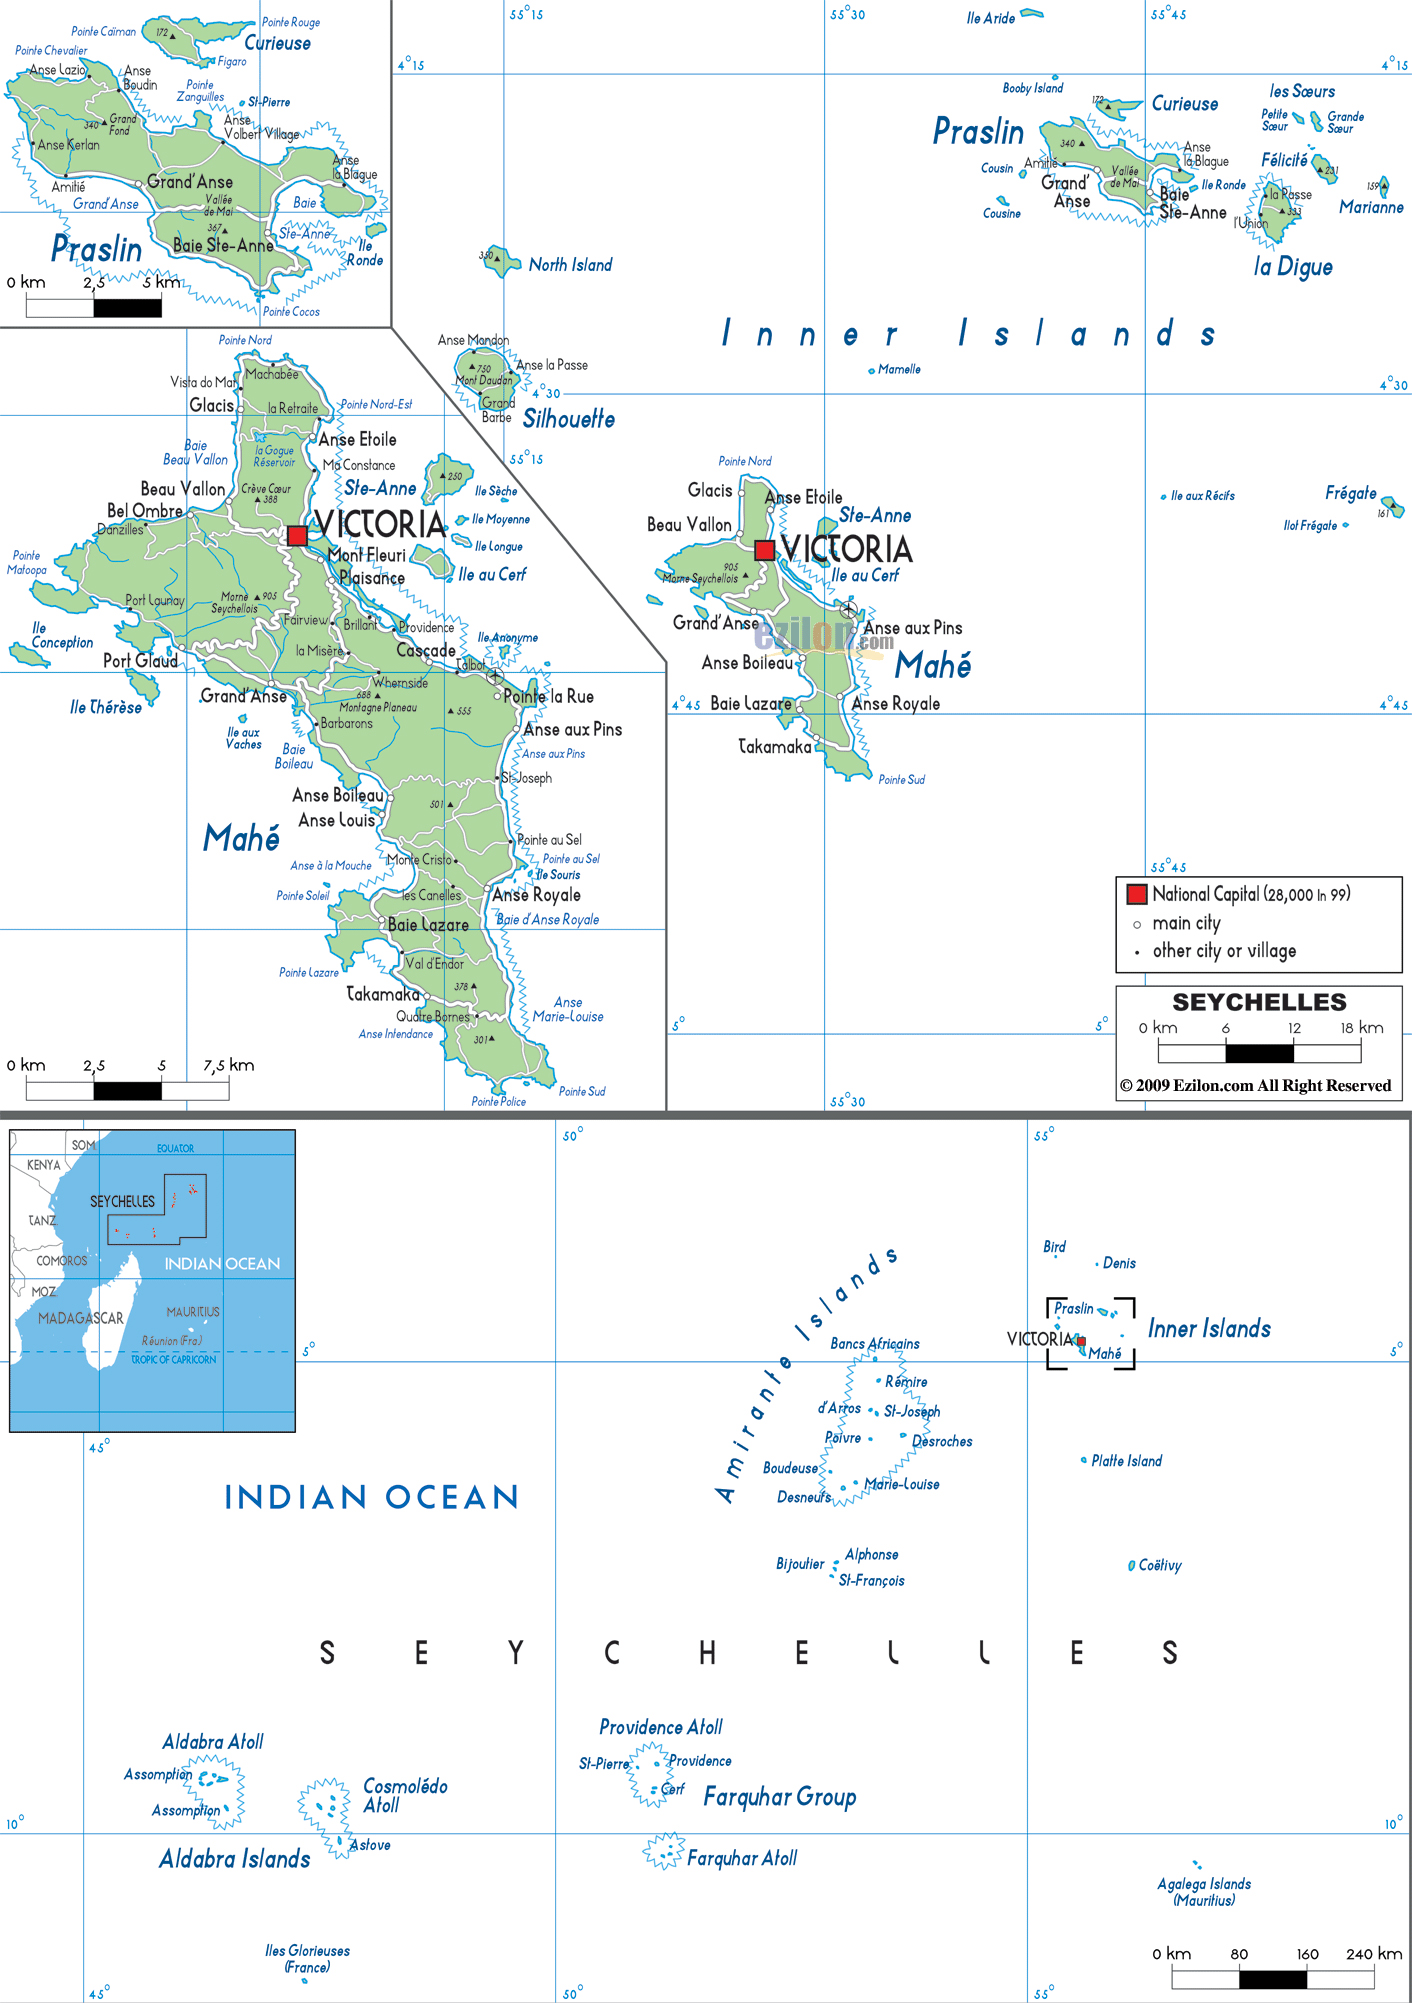 Seychelle Islands (4)